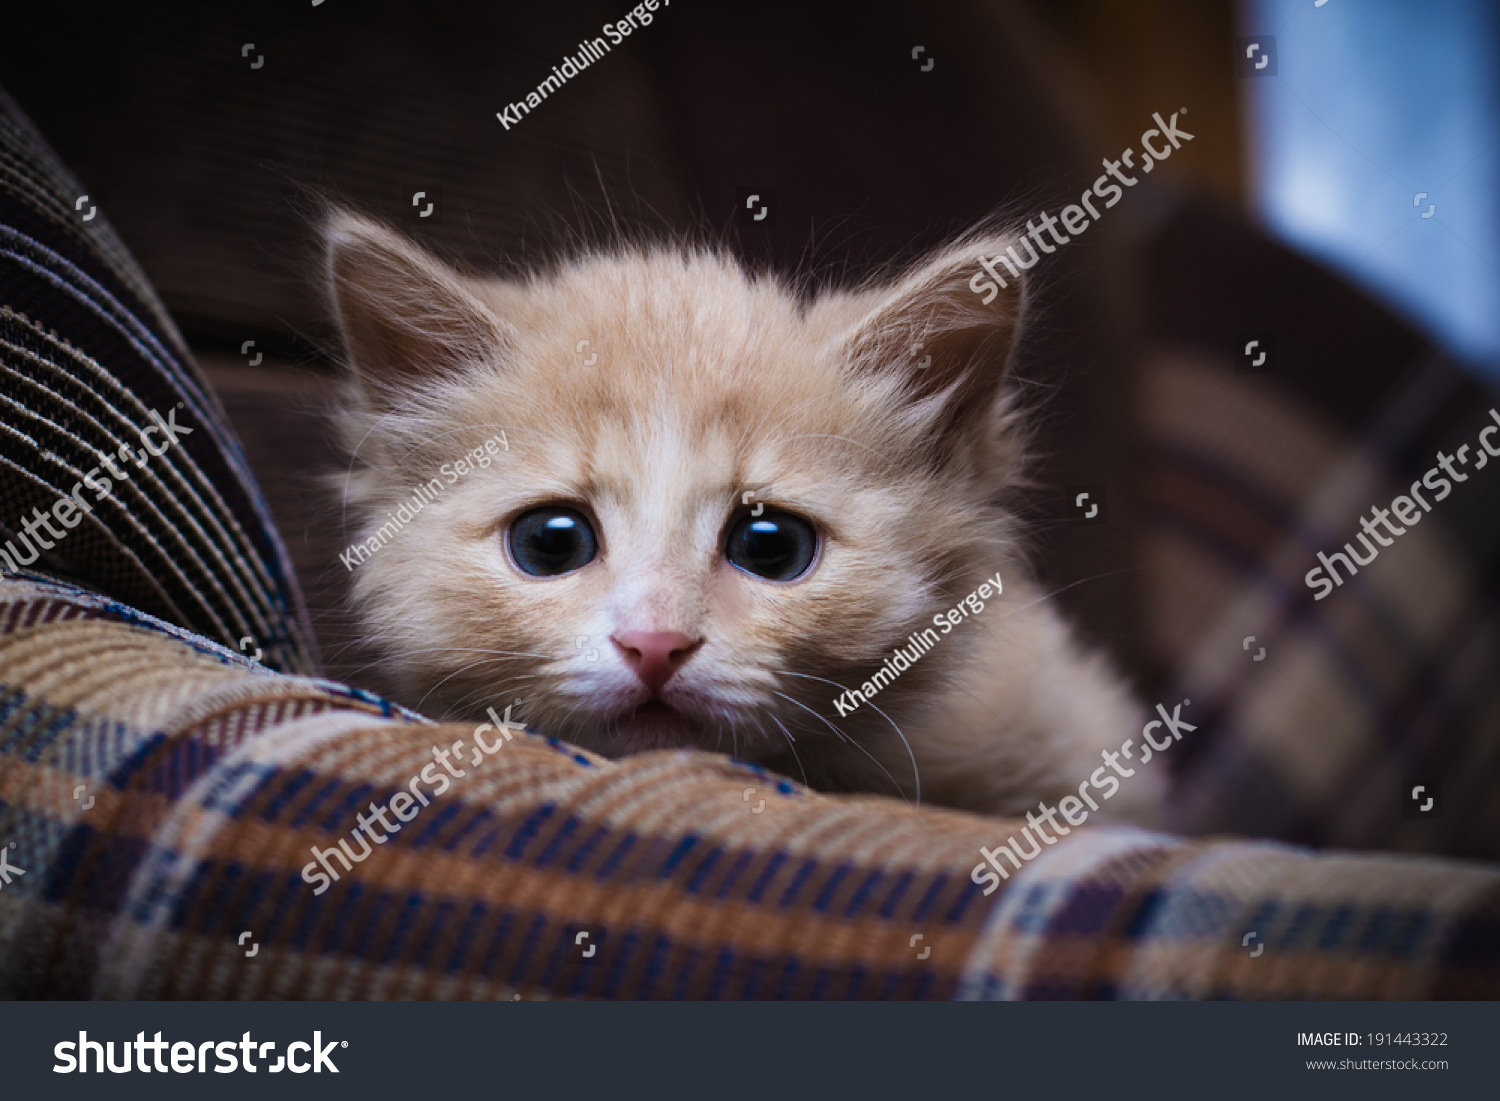 Scared Kitten Hiding At Home. Stock Photo 191443322 ...Scared Kitten Hiding